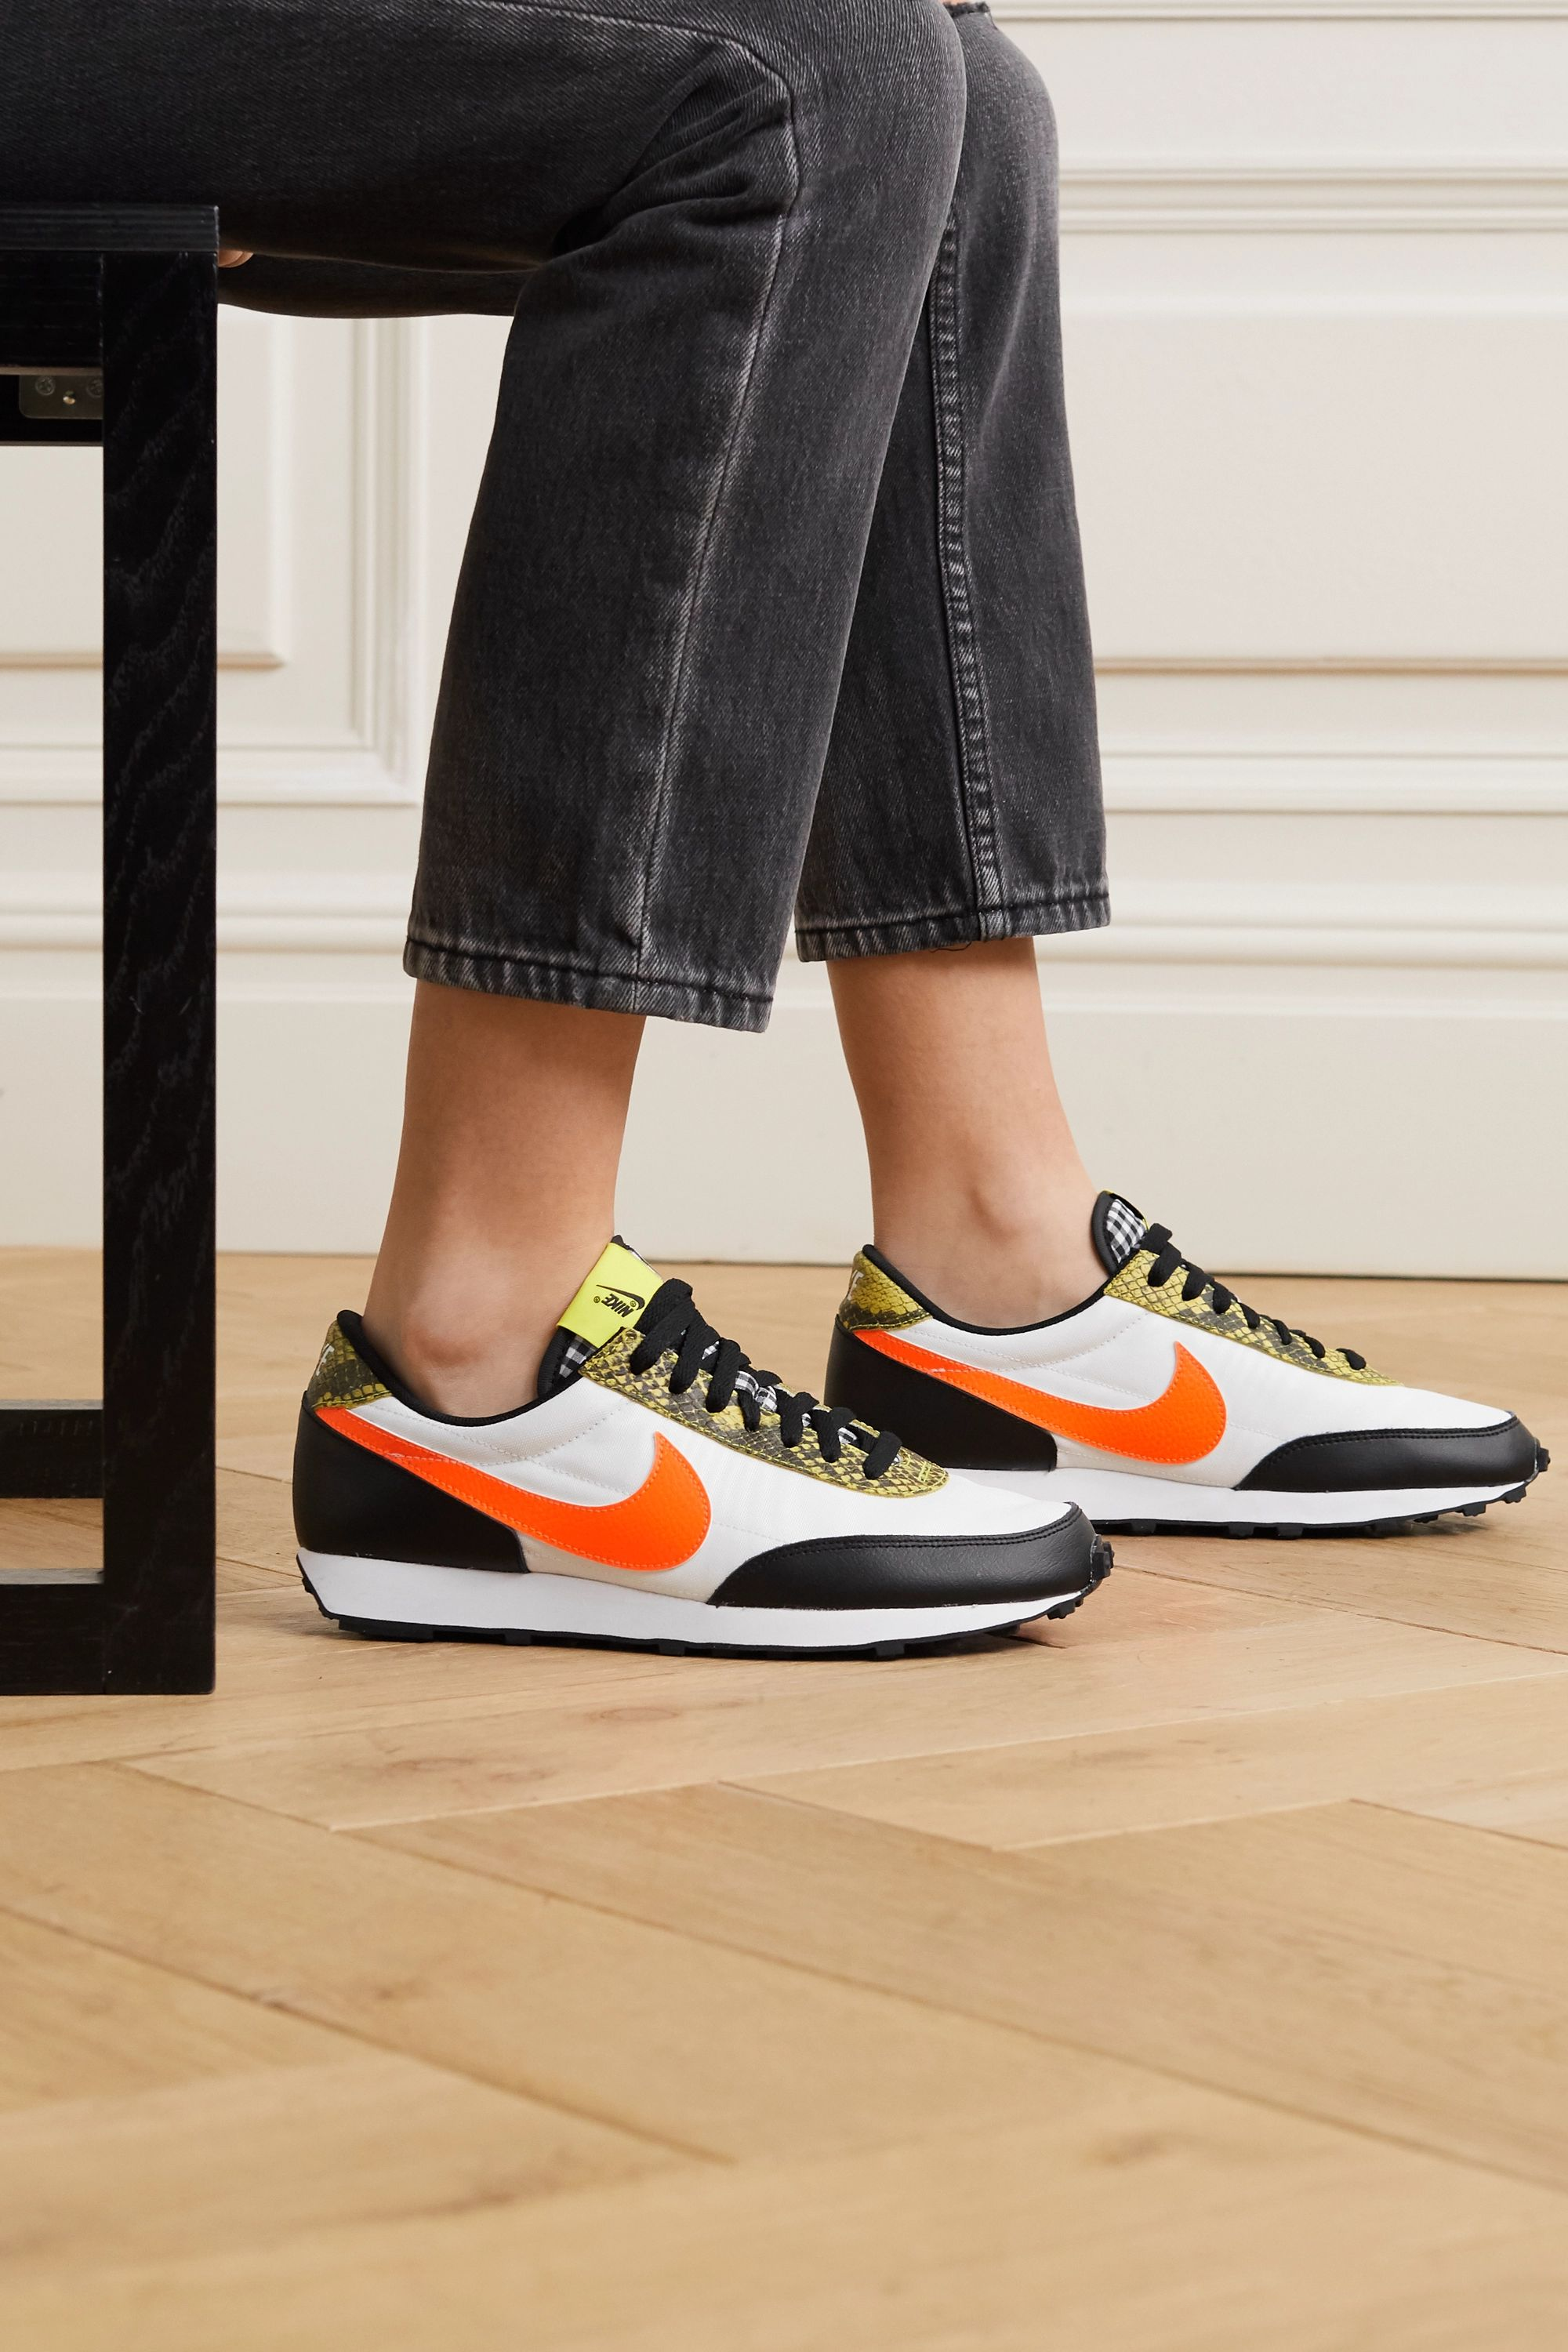 Nike Daybreak QS mesh and leather sneakers